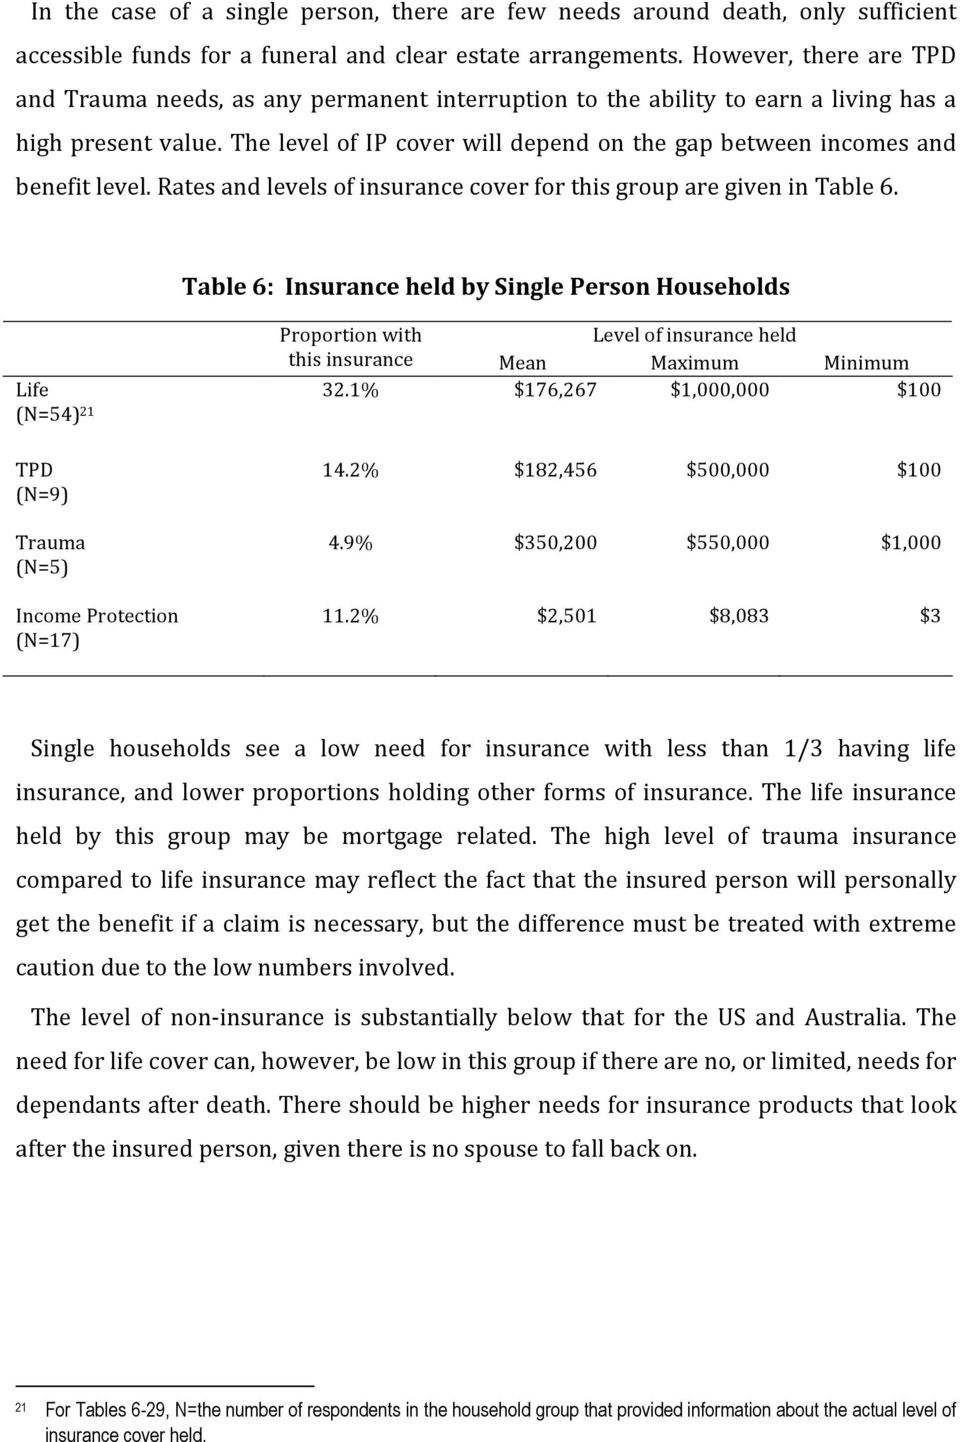 The level of IP cover will depend on the gap between incomes and benefit level. Rates and levels of insurance cover for this group are given in Table 6.